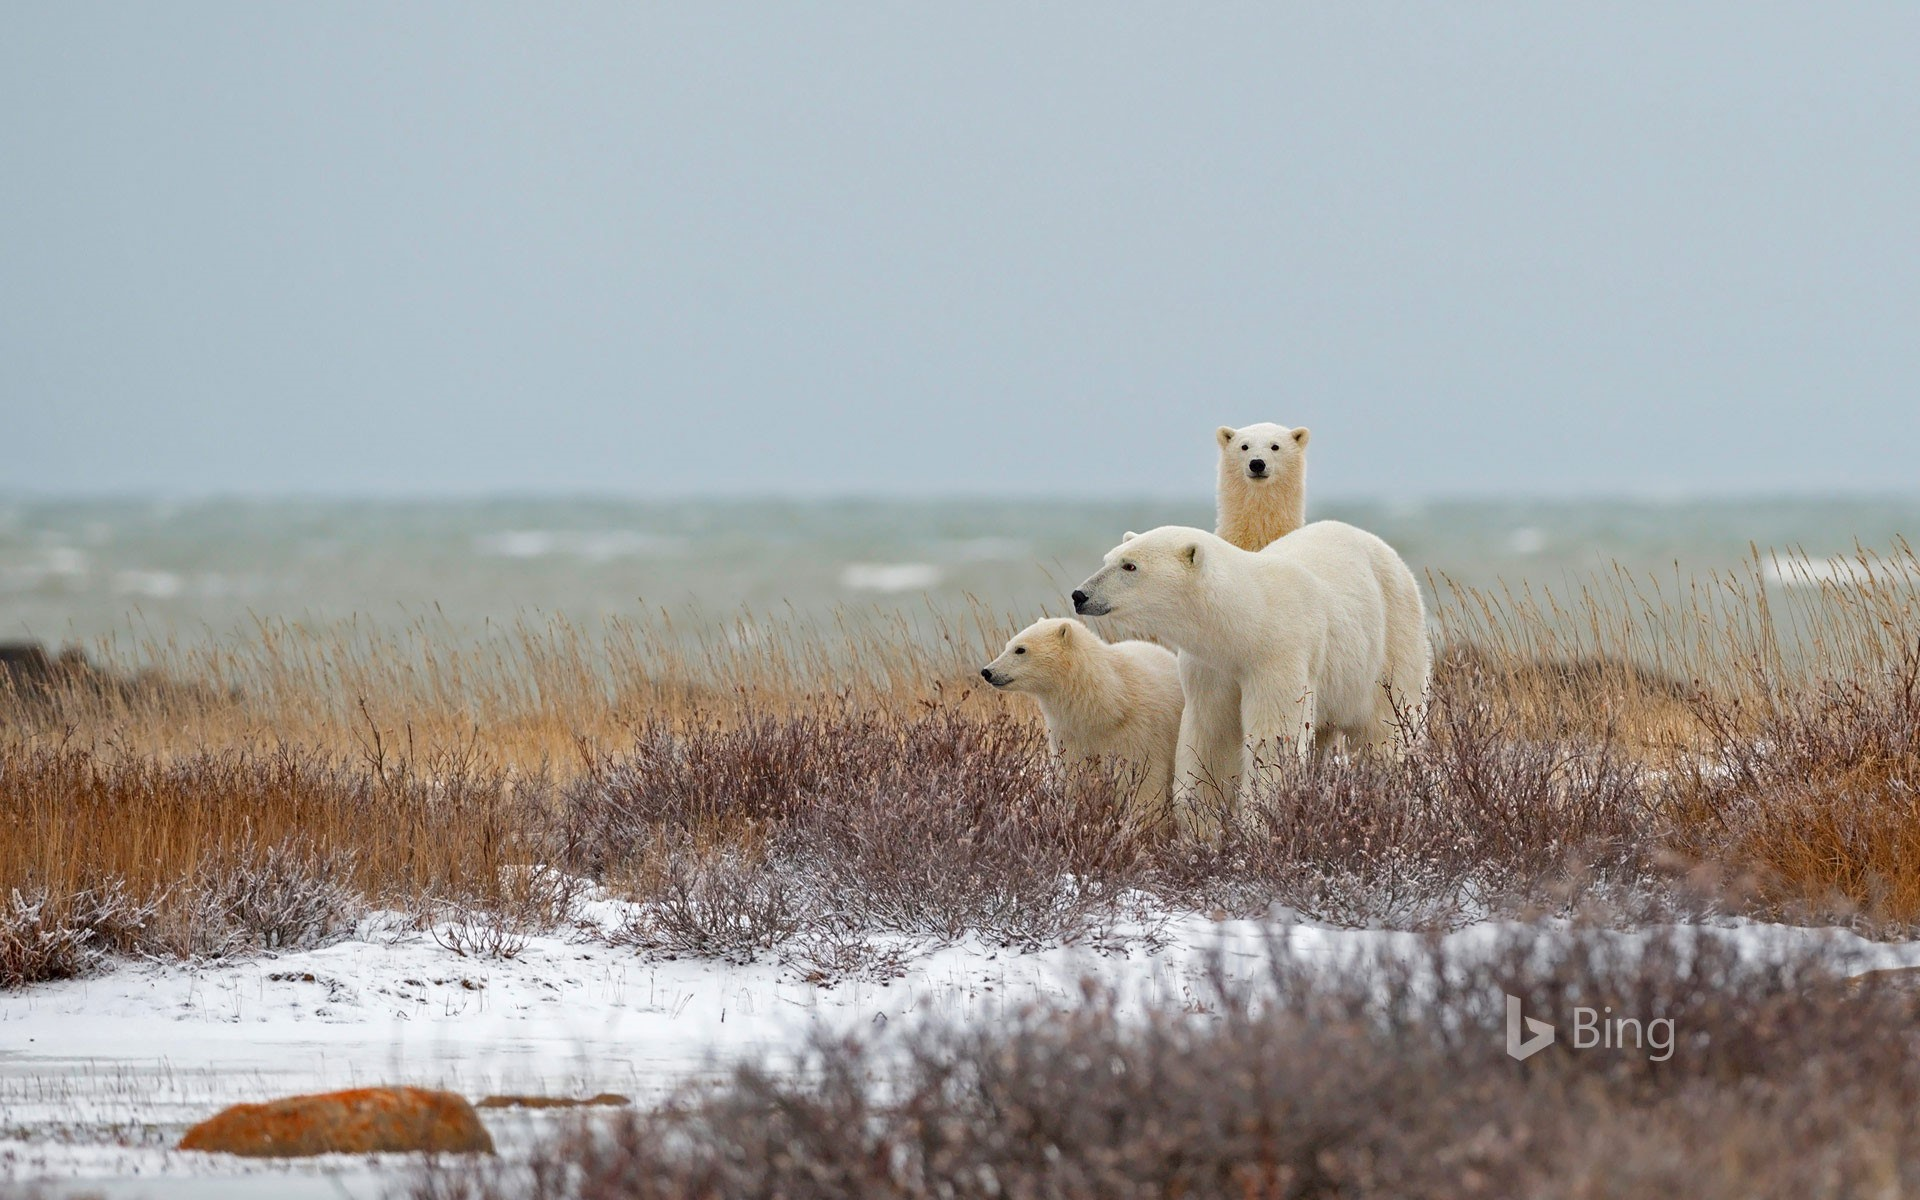 A polar bear family near the Hudson Bay in Churchill, Manitoba, Canada